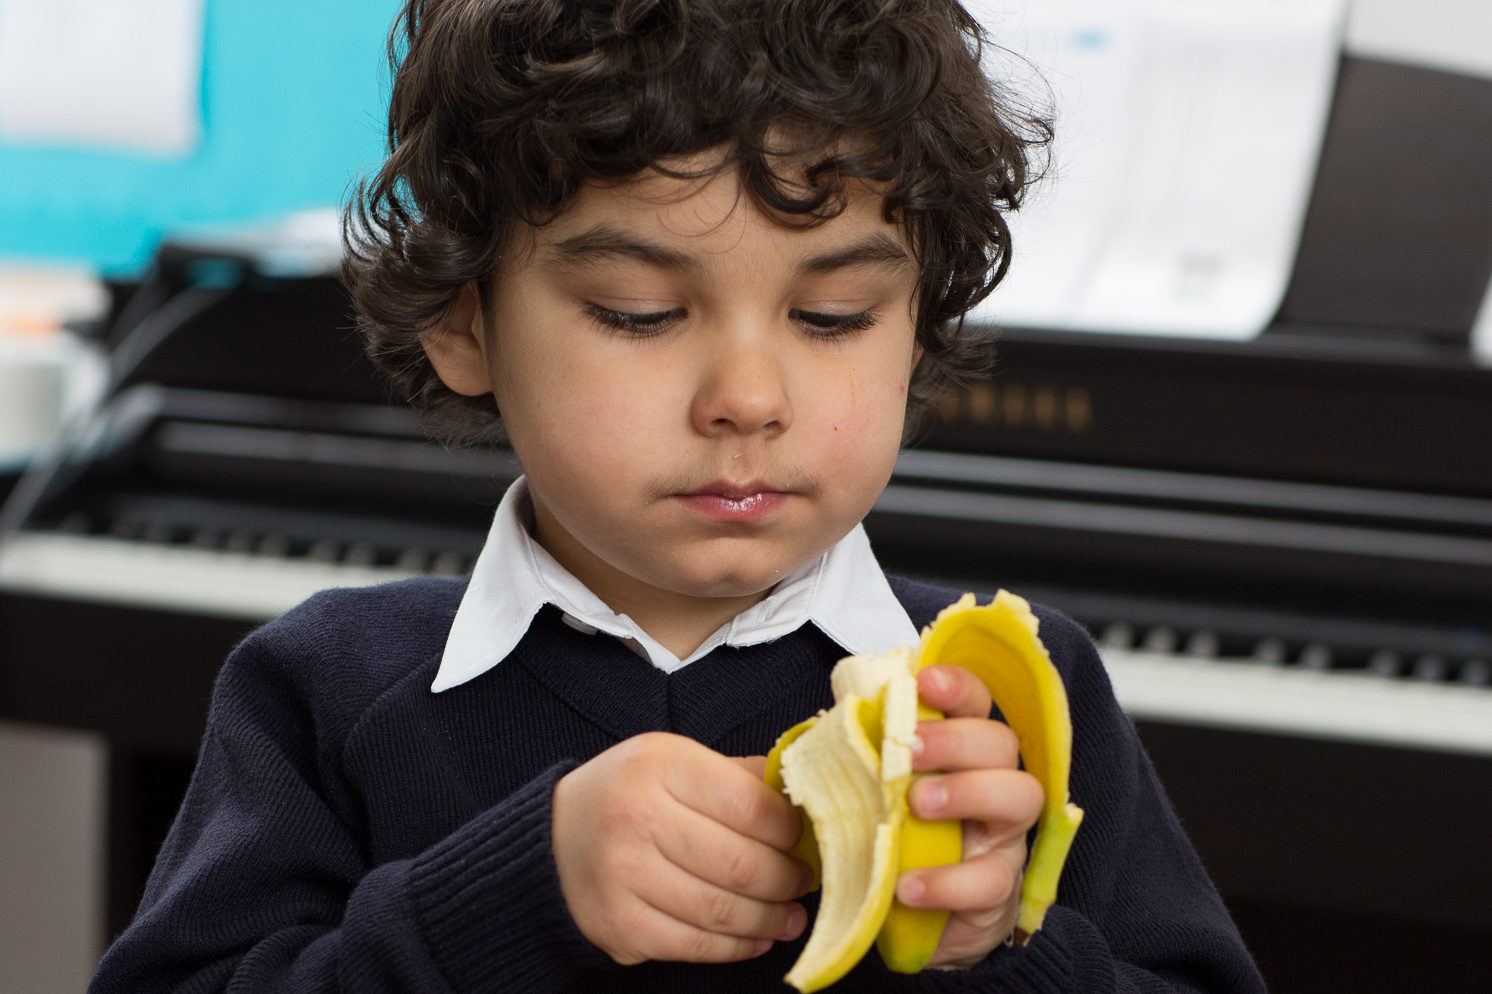 Boy peeling banana